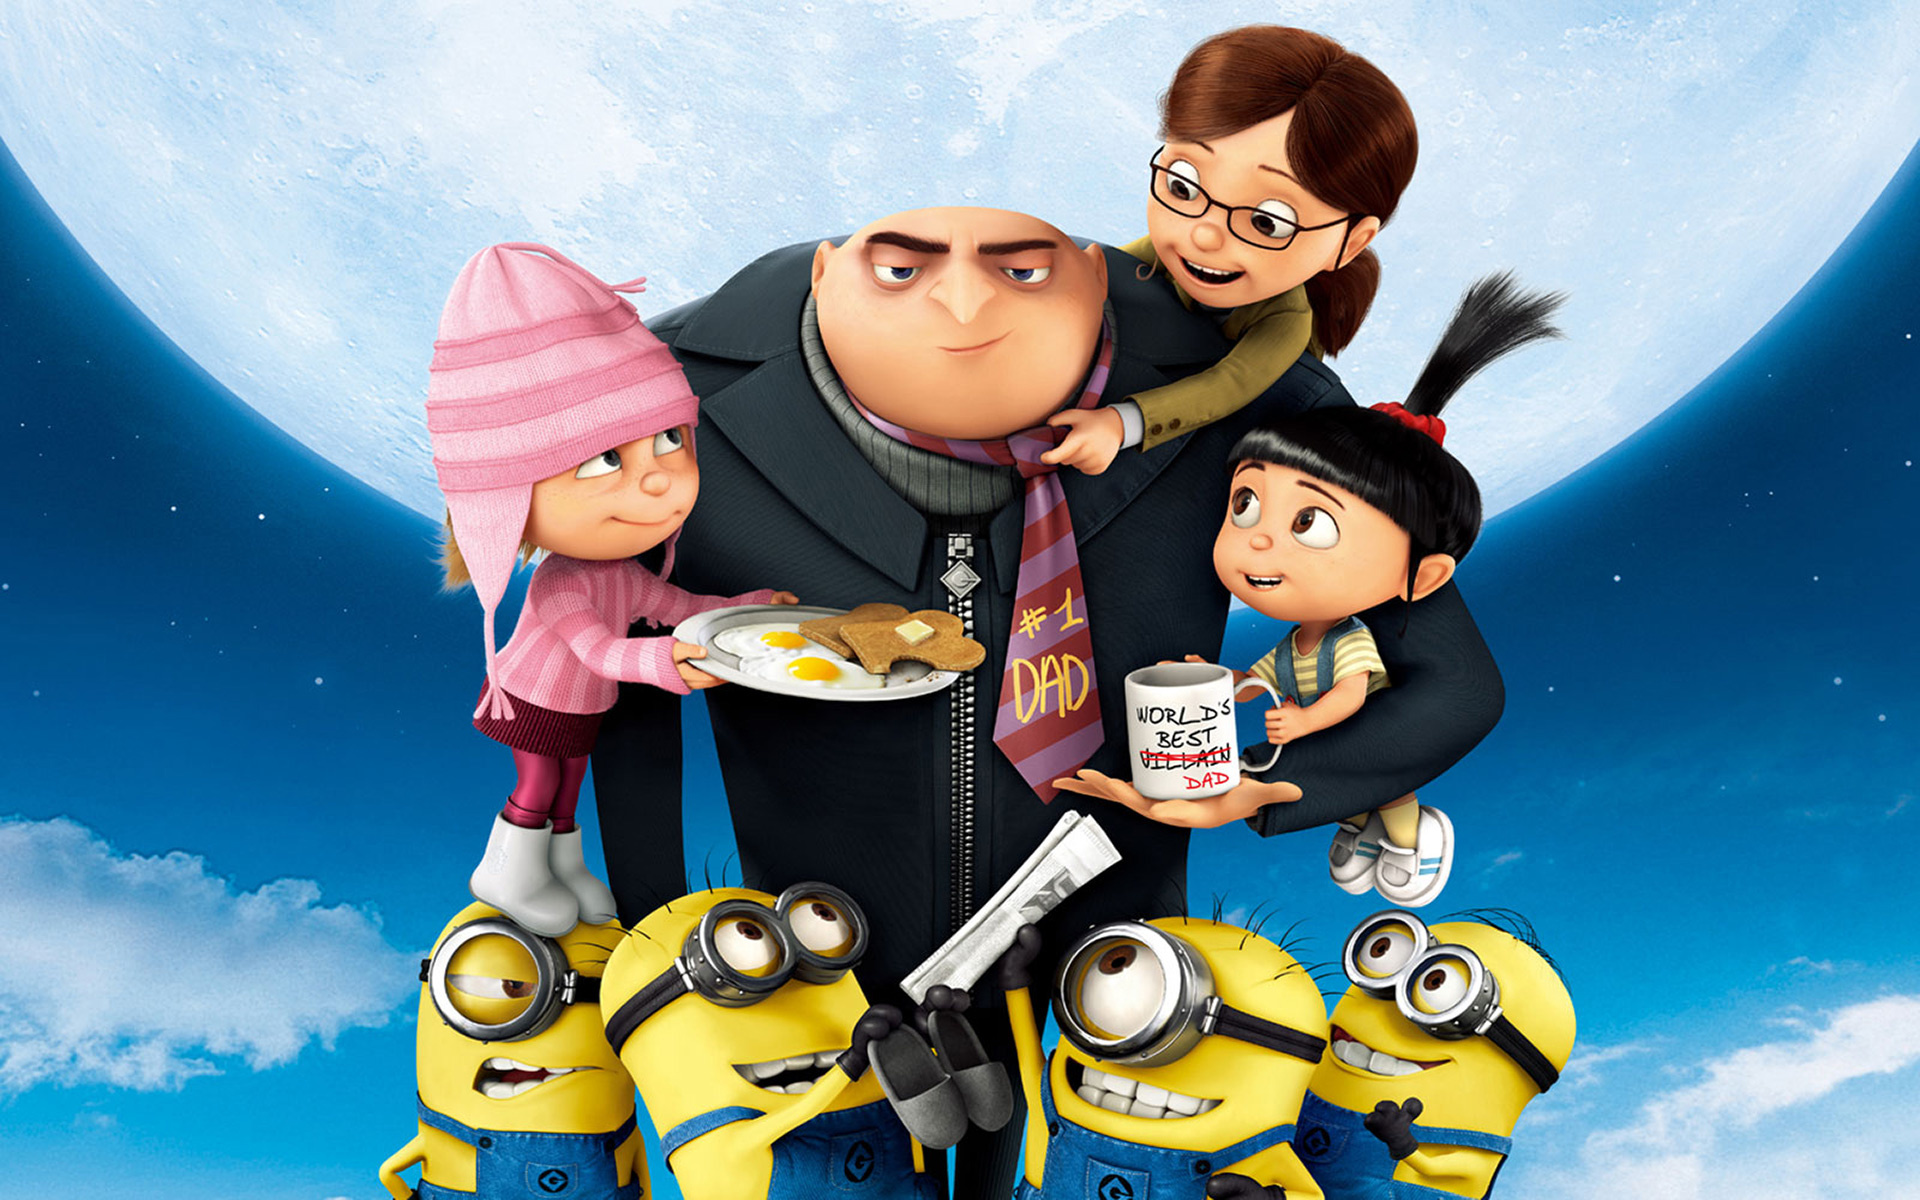 despicable me 2 club images world best dad???? hd wallpaper and